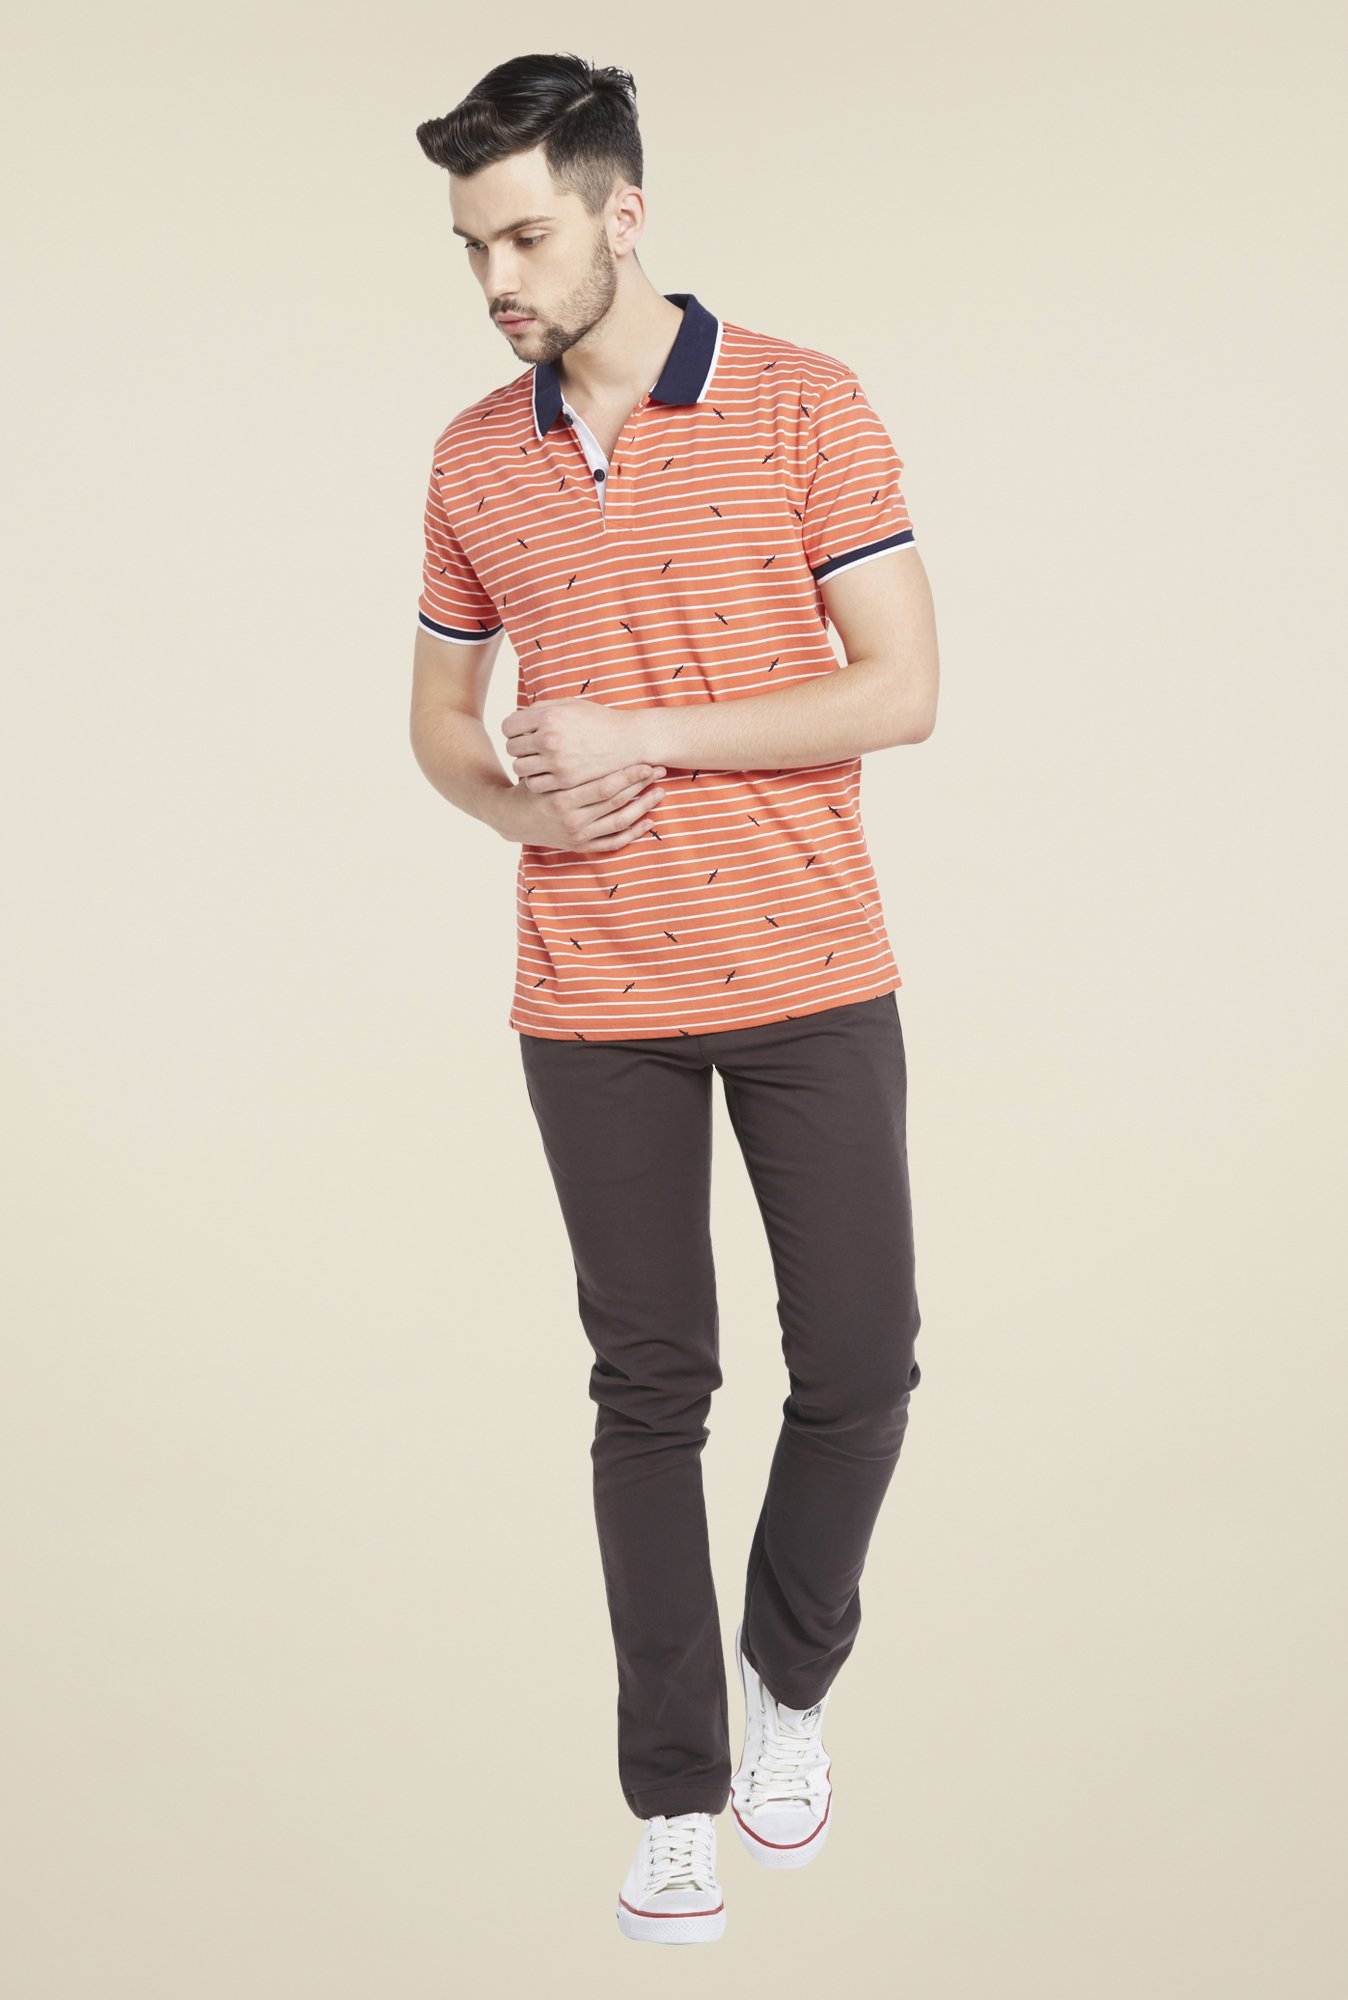 Globus Orange Striped Polo T Shirt